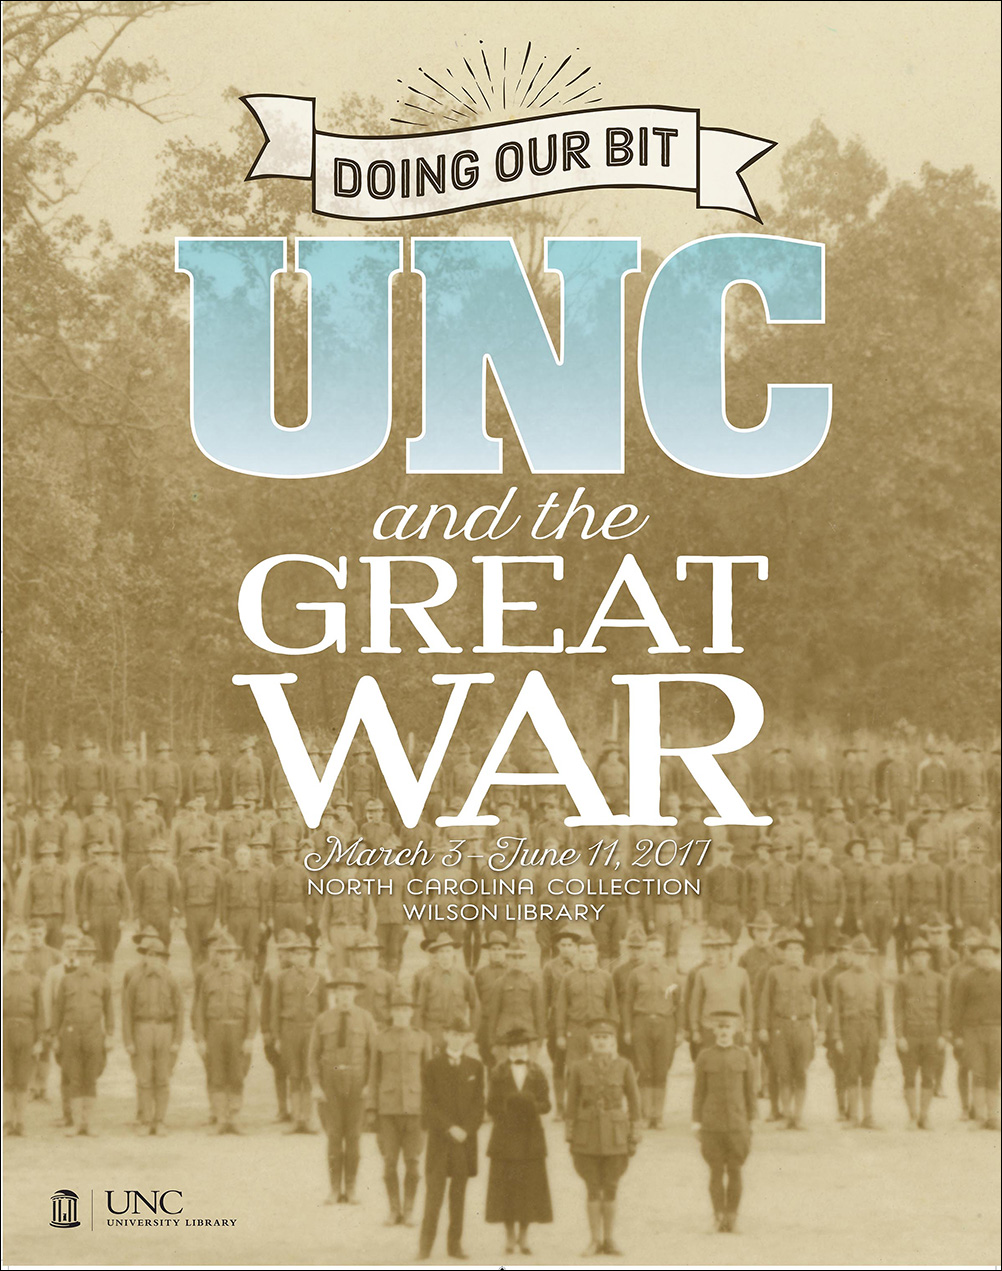 Poster for the Doing Our Bit: UNC and the Great War exhibt, with the dates March 3 - June 11, 2017.